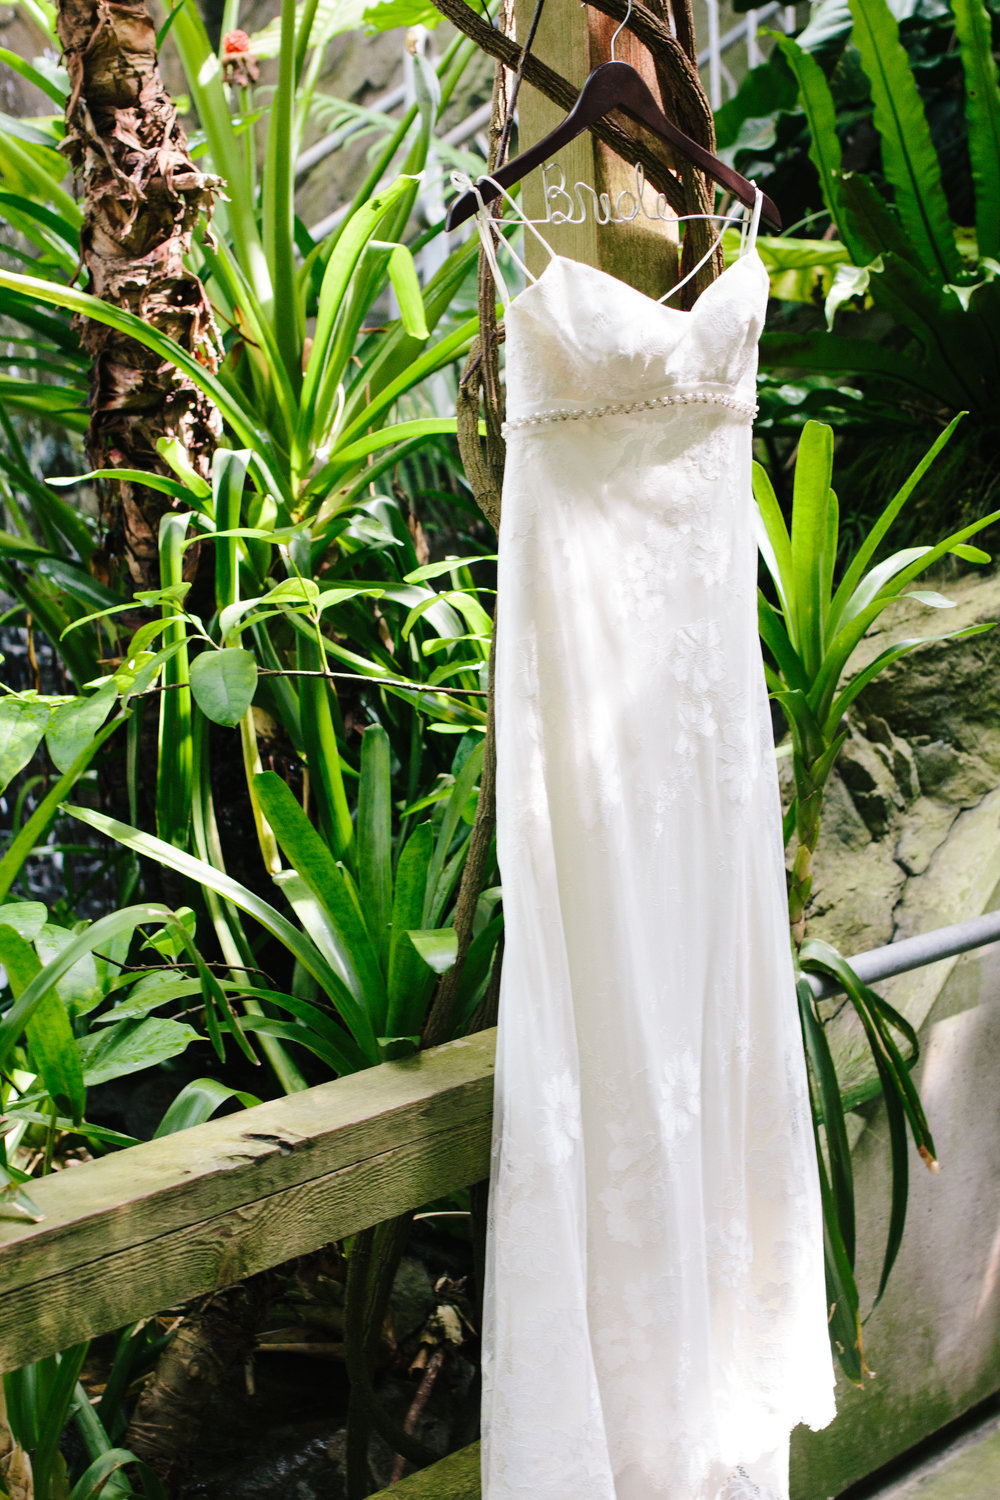 Low Back Lace Wedding Gown - A Botanical Gardens Budget Wedding - From Britt's Eye View Photography